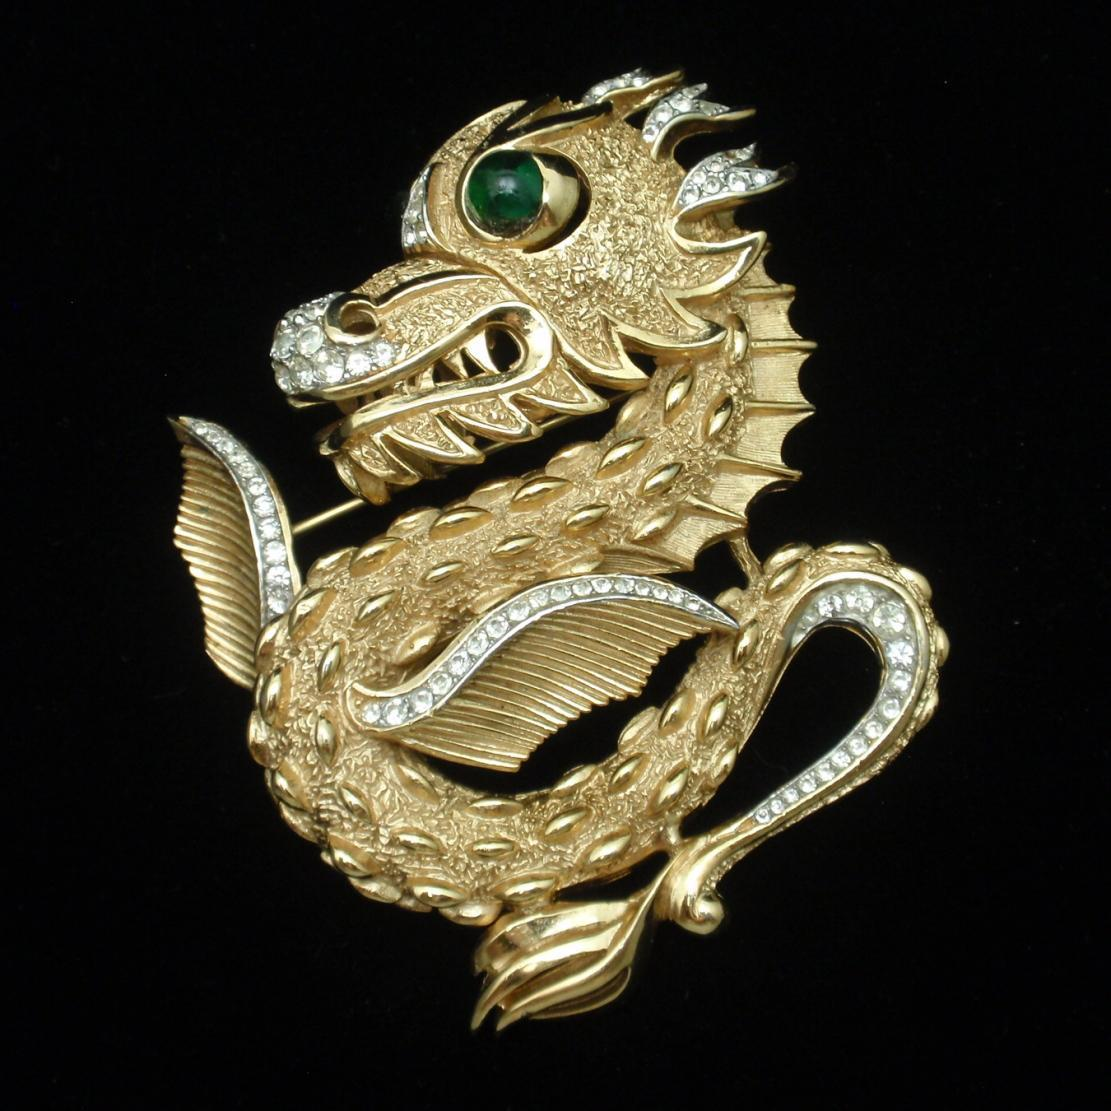 Dragon Brooch Pin Andre Boeuf for Trifari Vintage